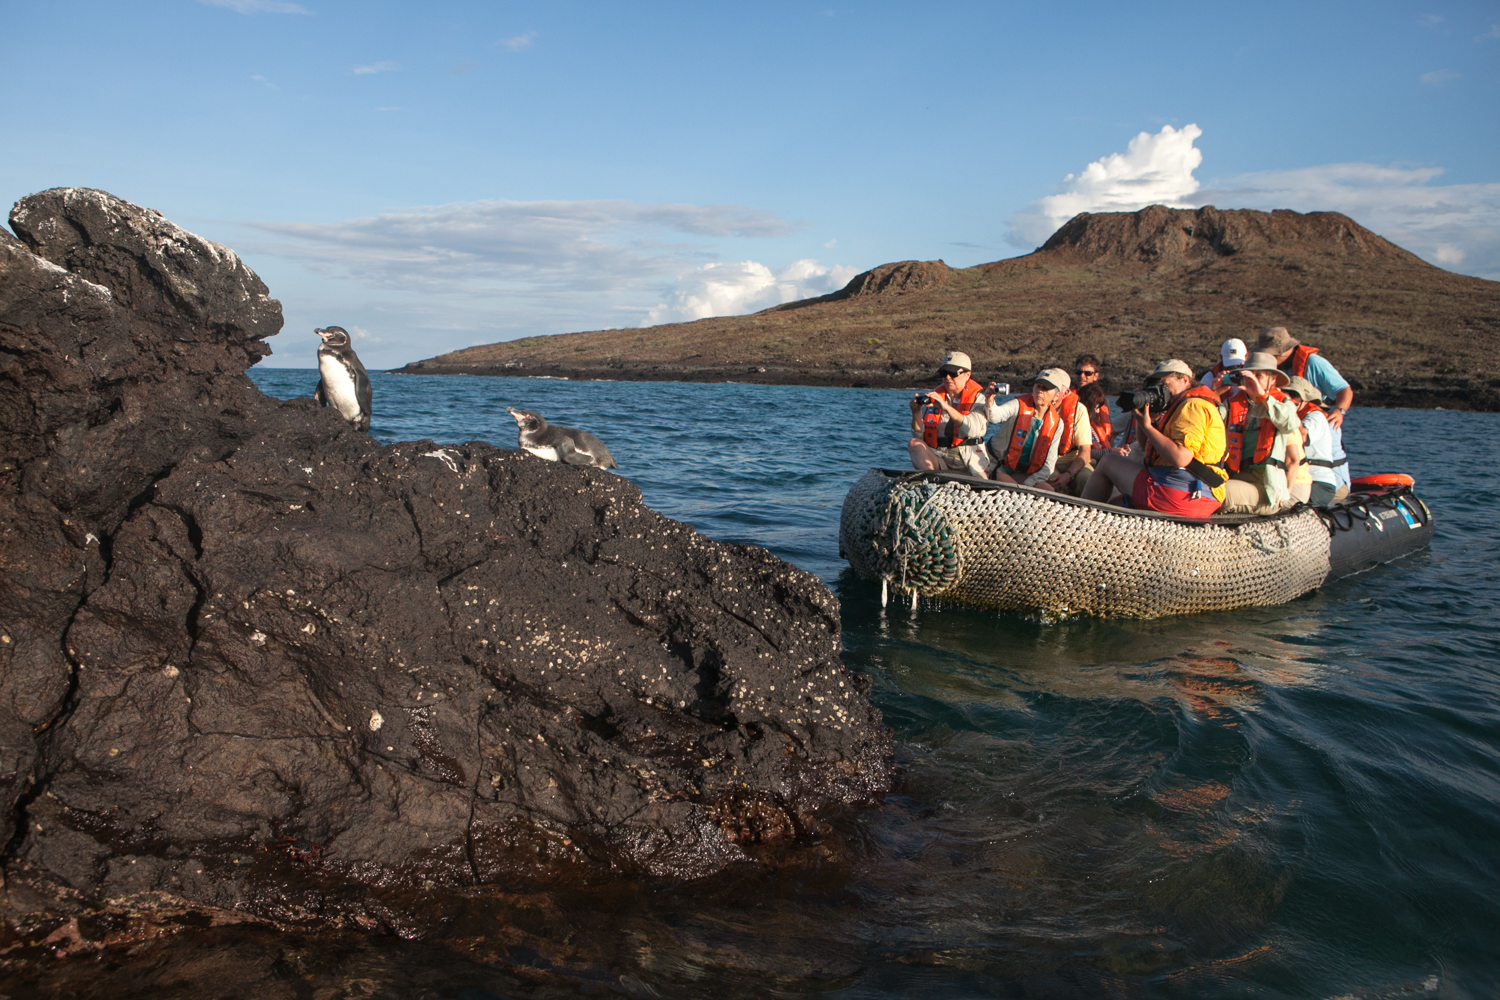 In the Galapagos Islands, tourists observe and photograph several Galapagos penguins resting on a rock formation.